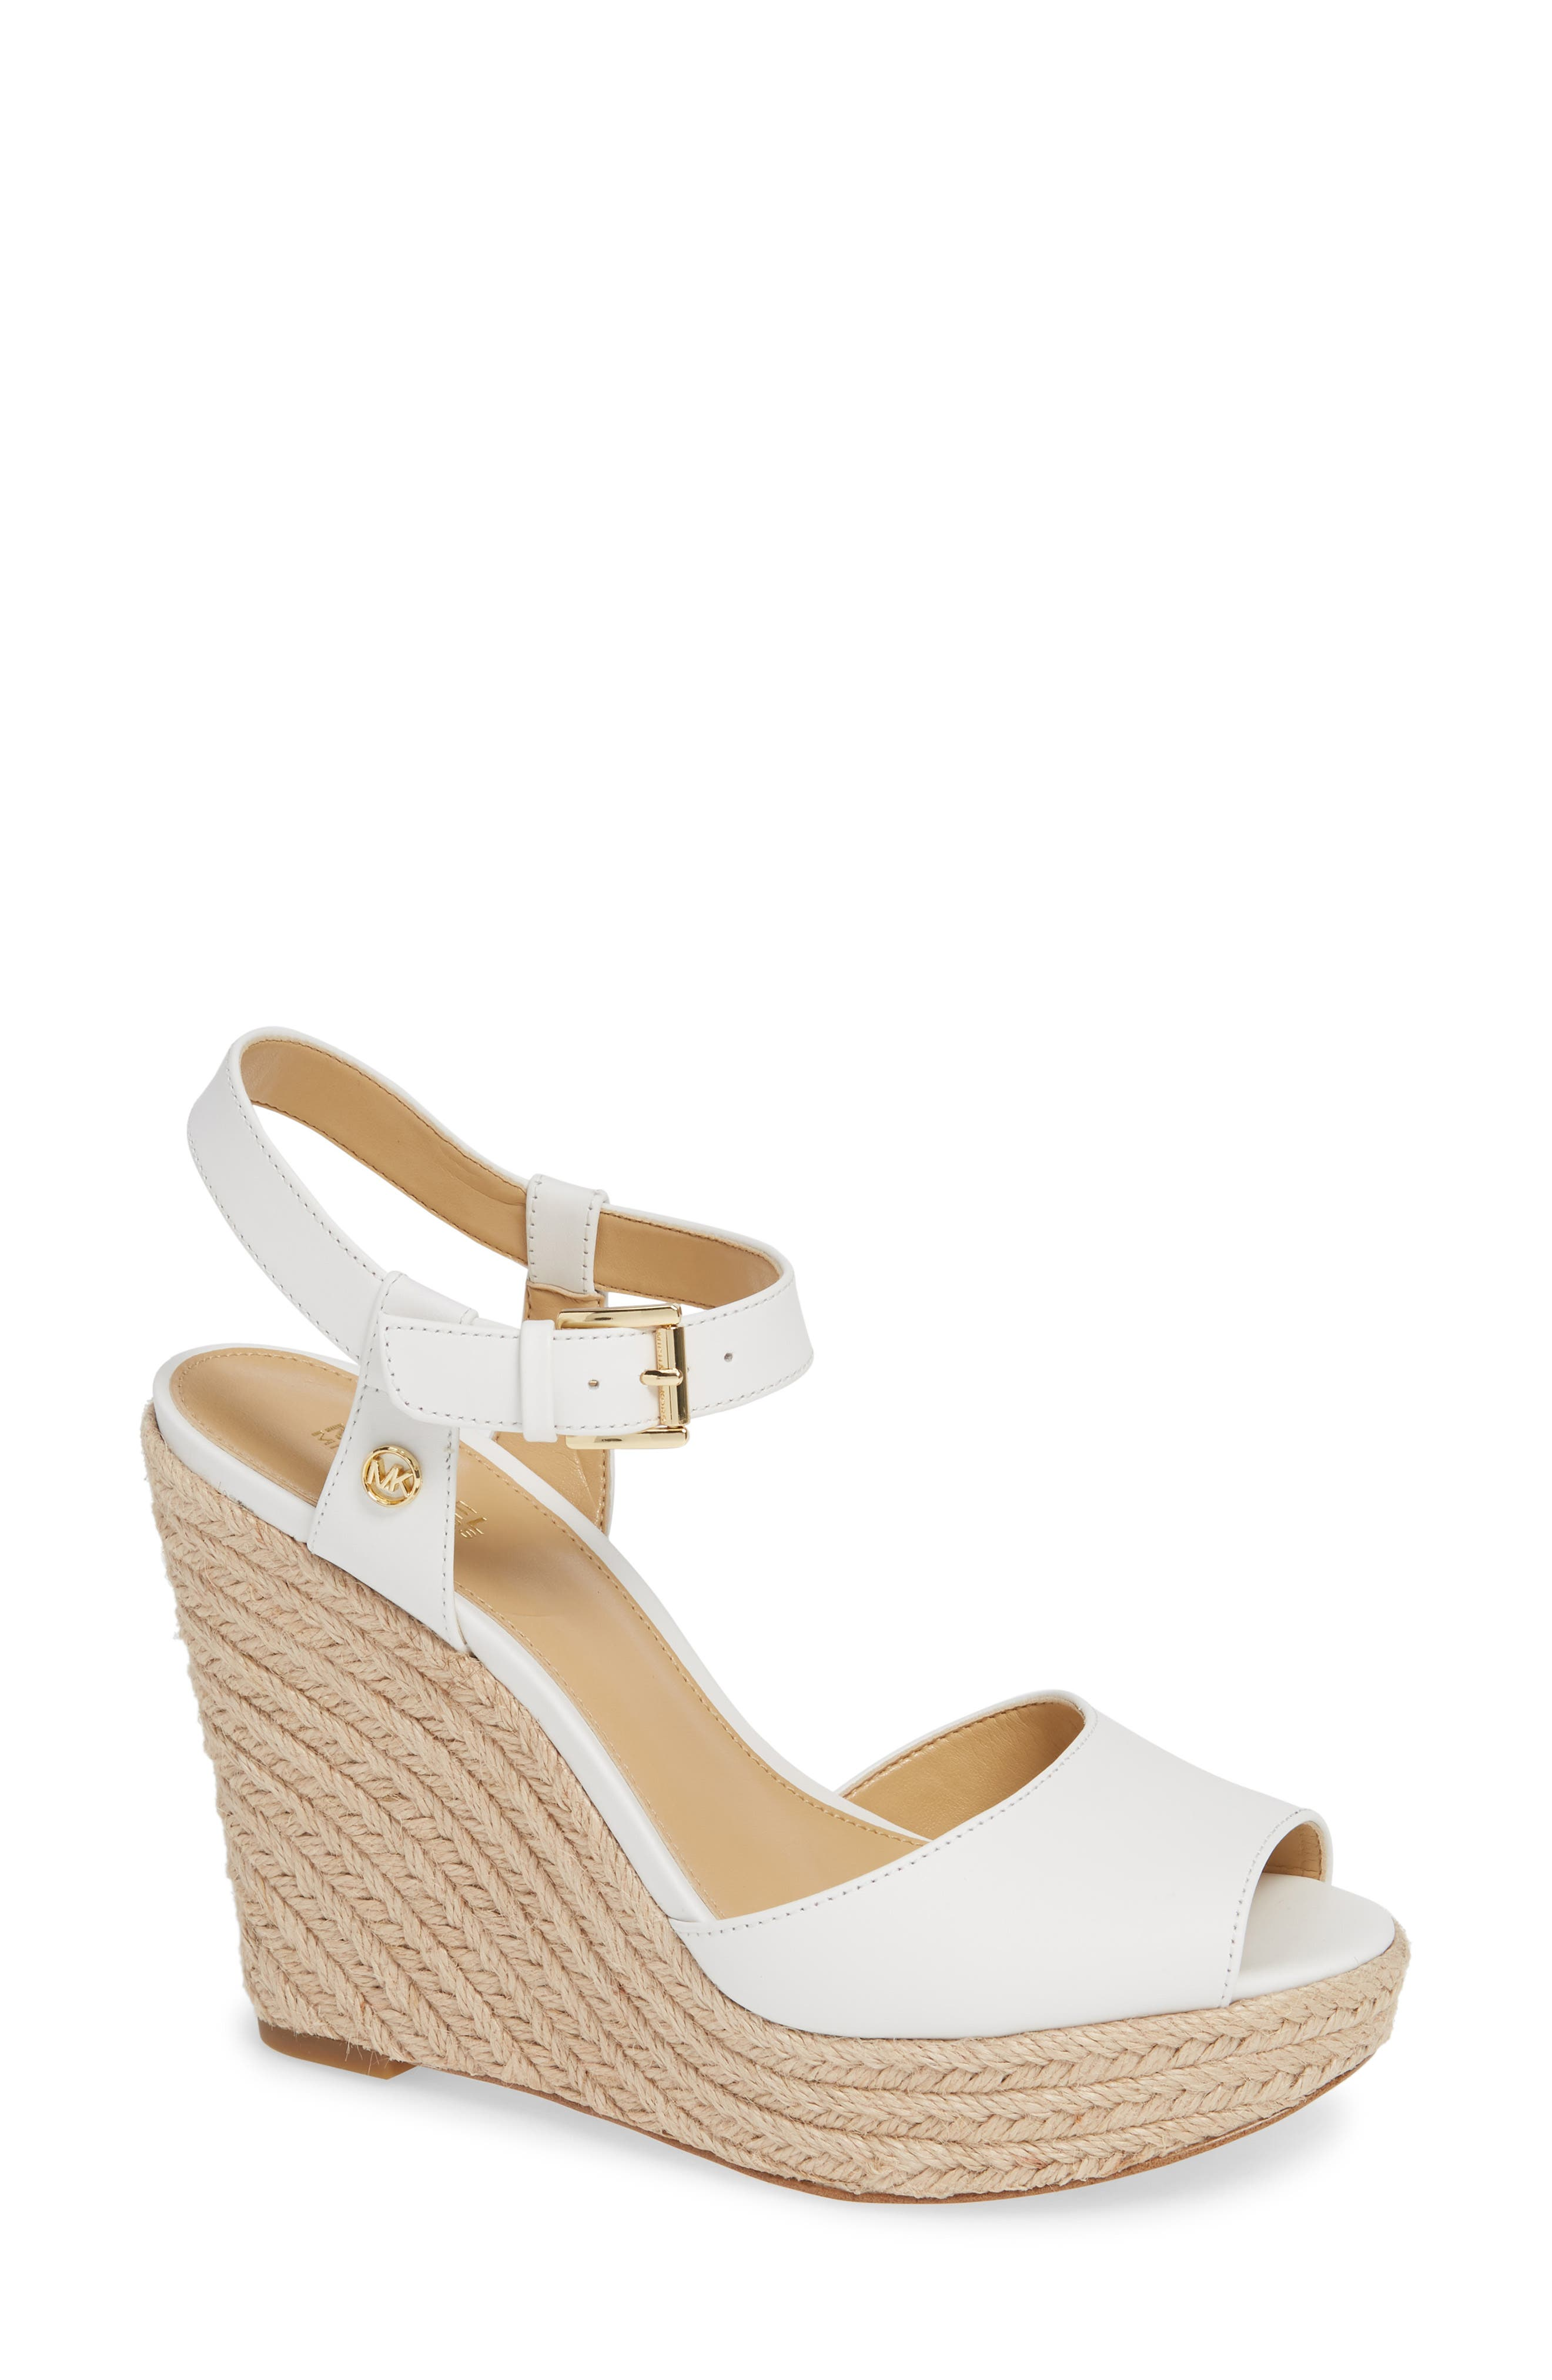 MICHAEL MICHAEL KORS, Carlyn Espadrille Wedge Sandal, Main thumbnail 1, color, 100